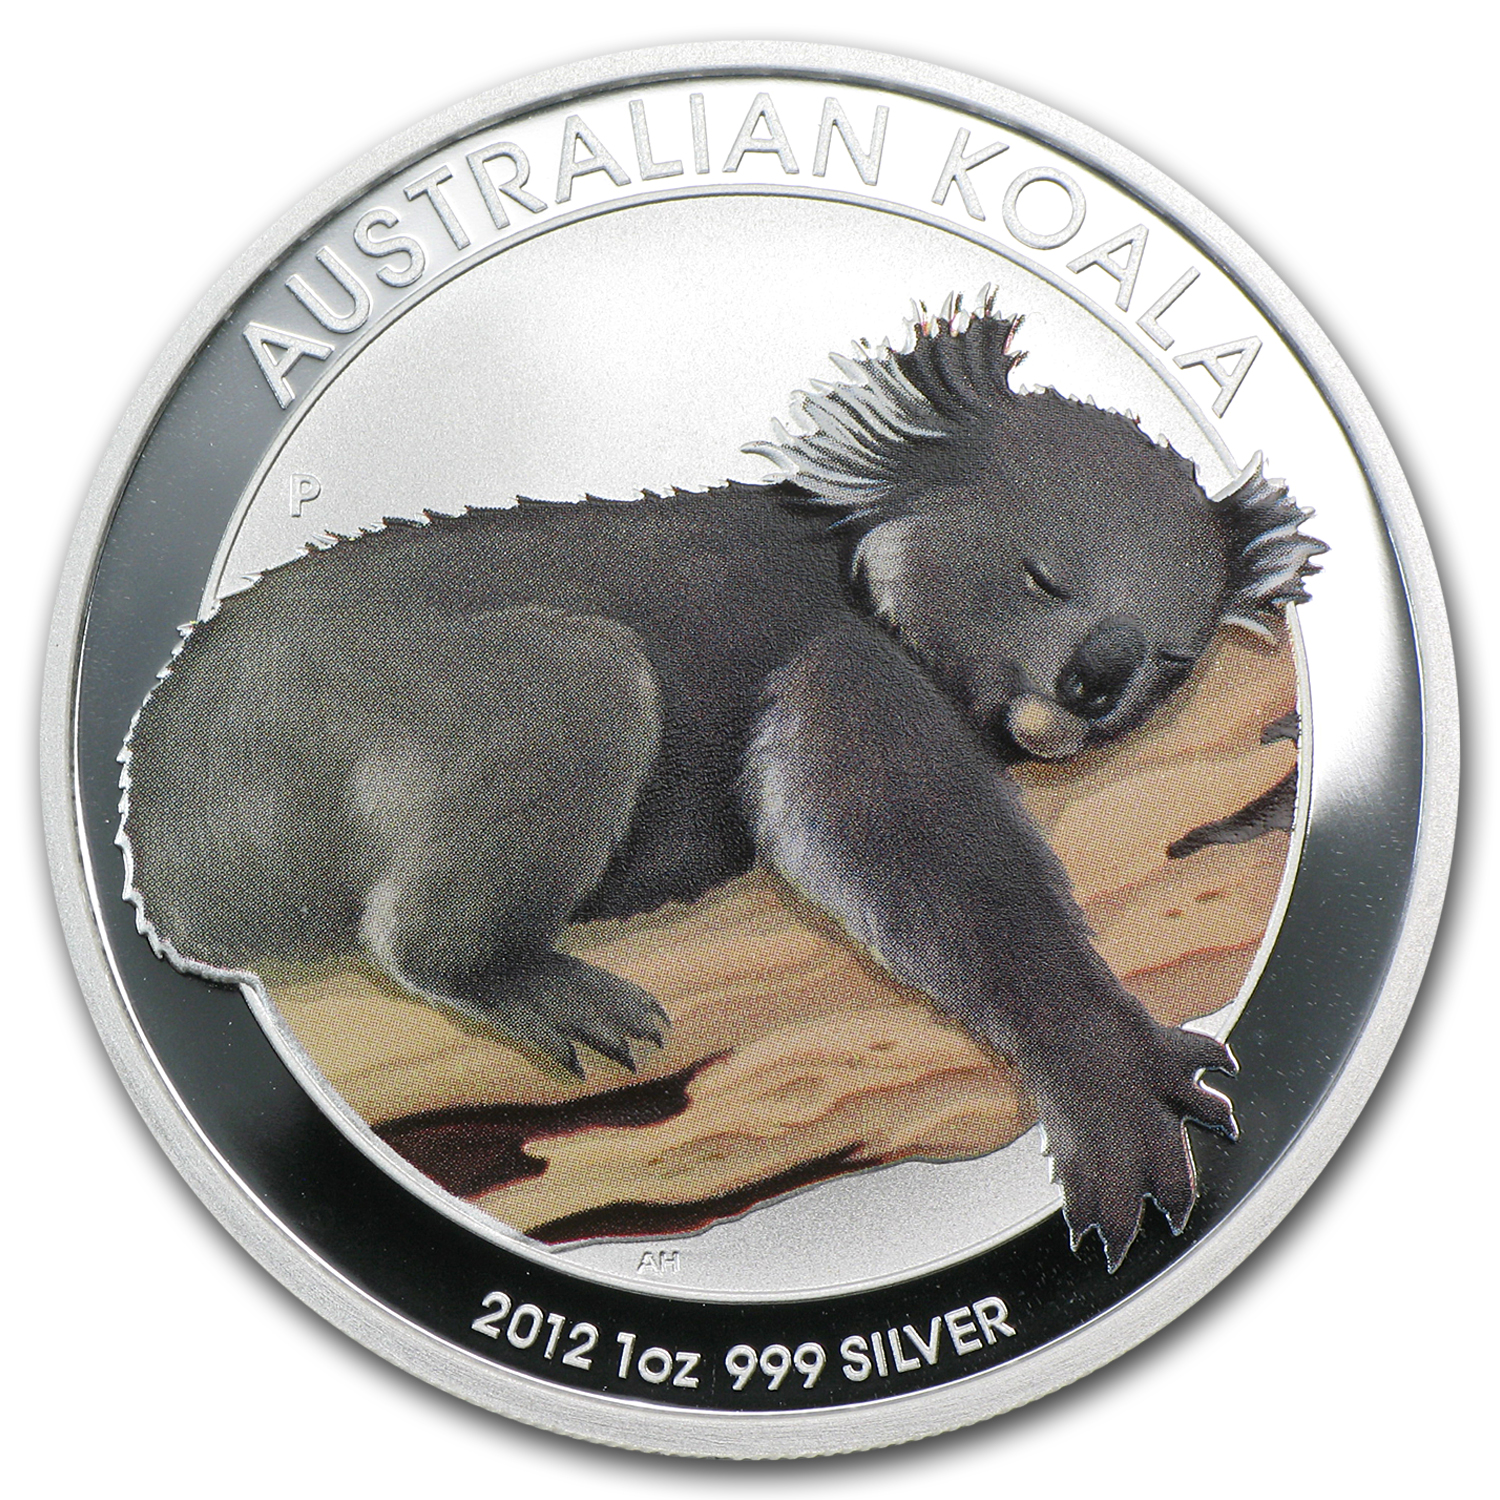 2012 1 oz Silver Australian Koala BU (Colorized, In Capsule)